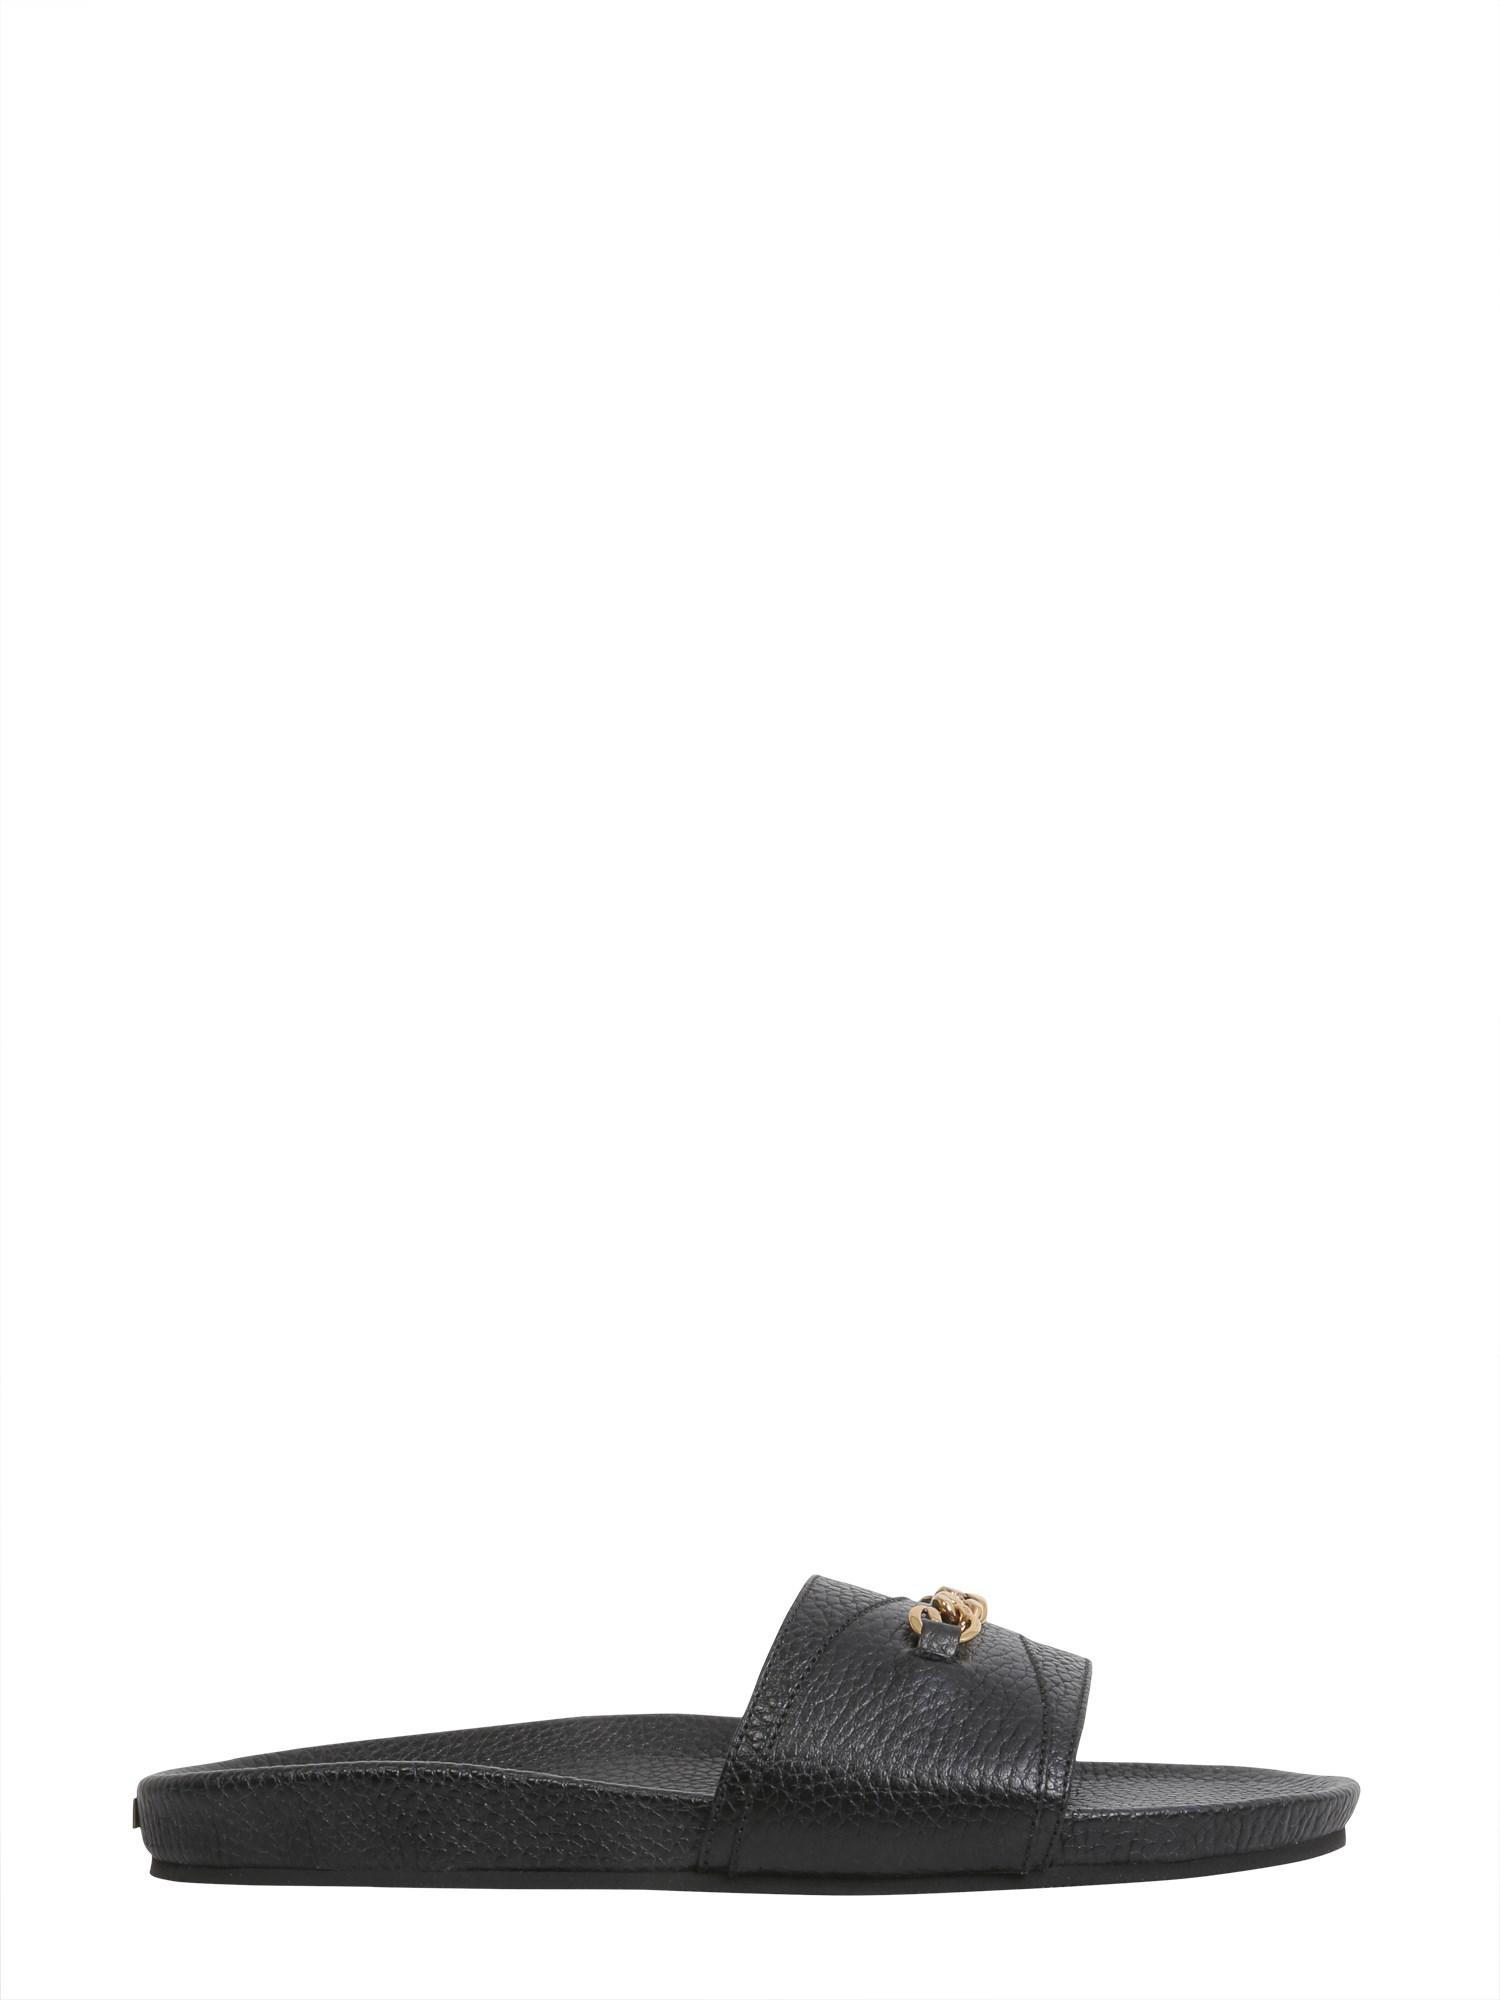 Tom Ford Slide sandals with chain detail unI4eeGf